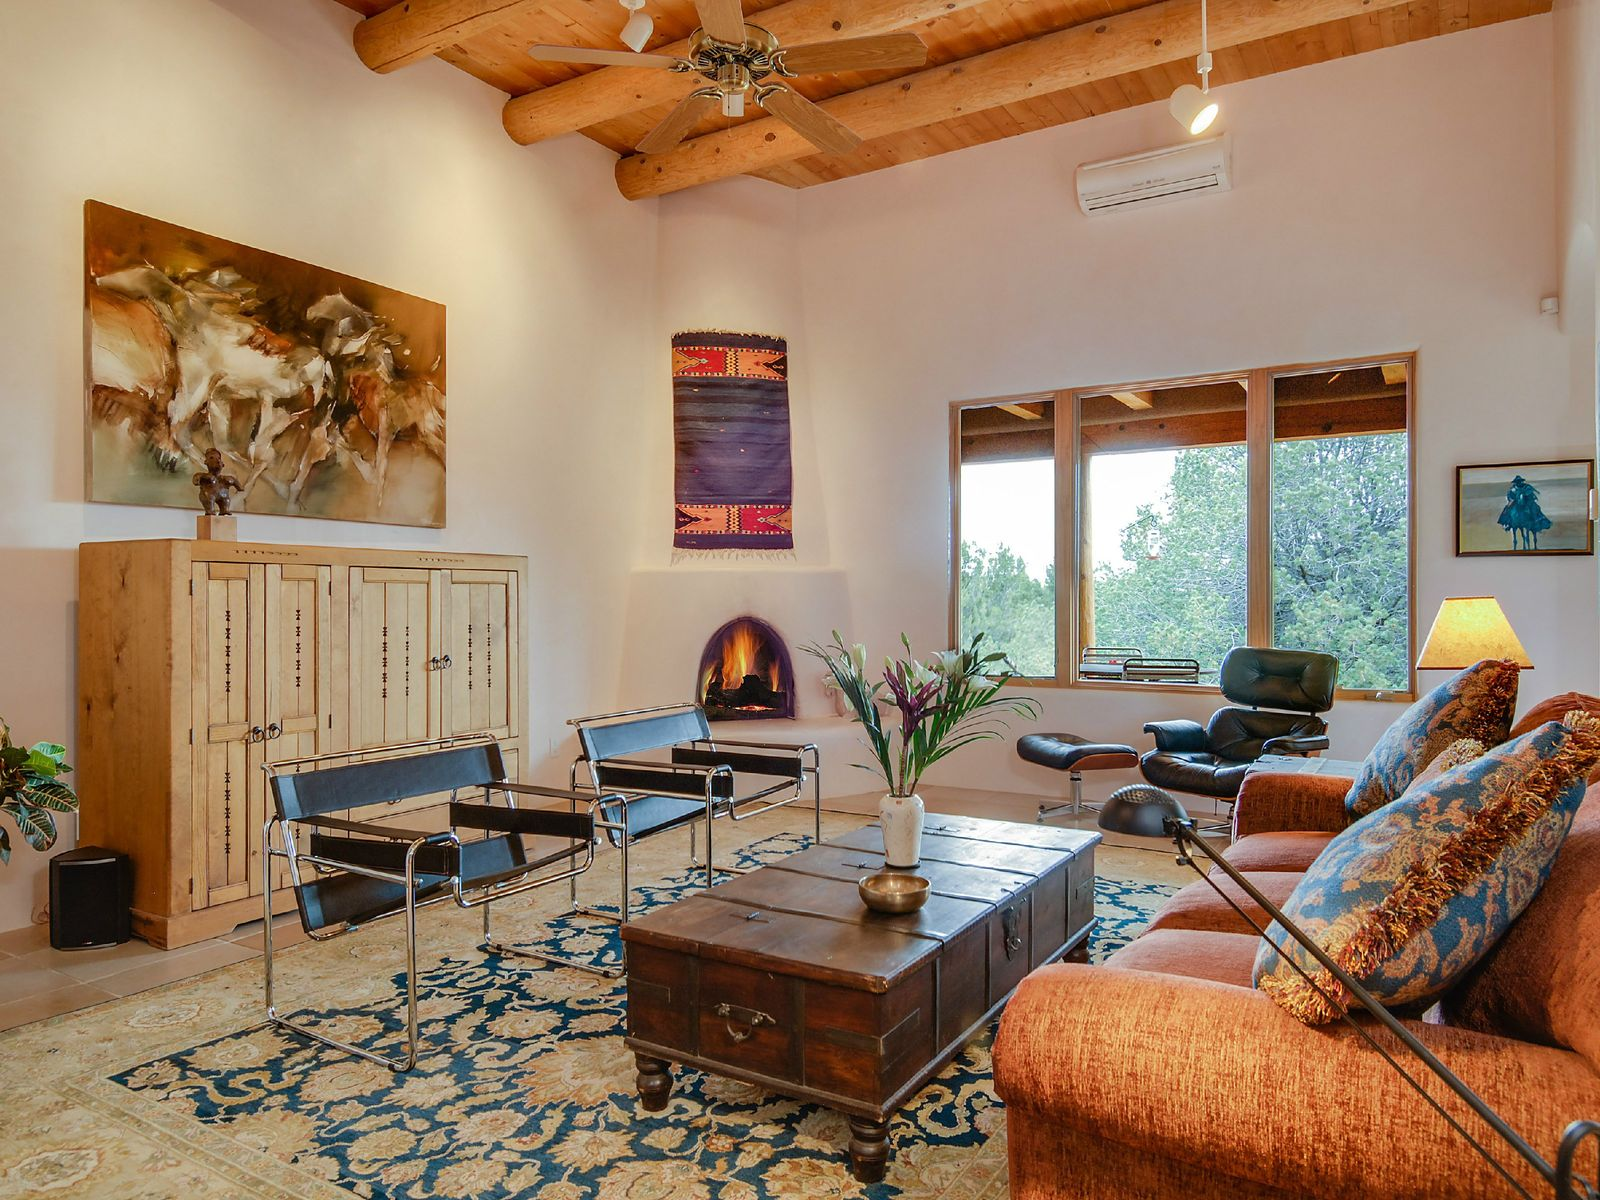 720 Calle Espejo, Santa Fe NM Single Family Home - Santa Fe Real Estate